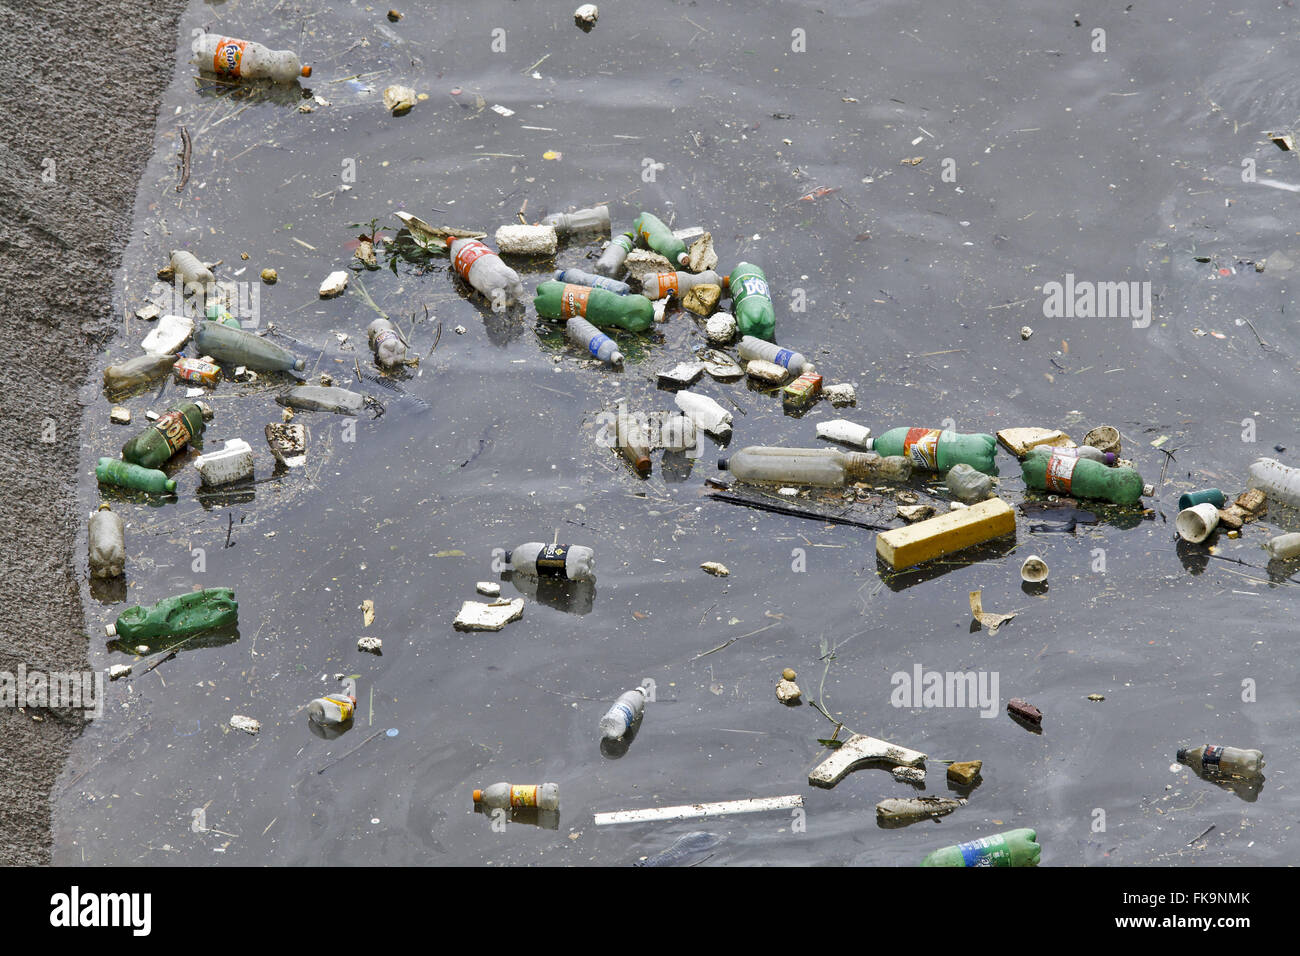 Trash floating on the river in flood season Tiête - Stock Image